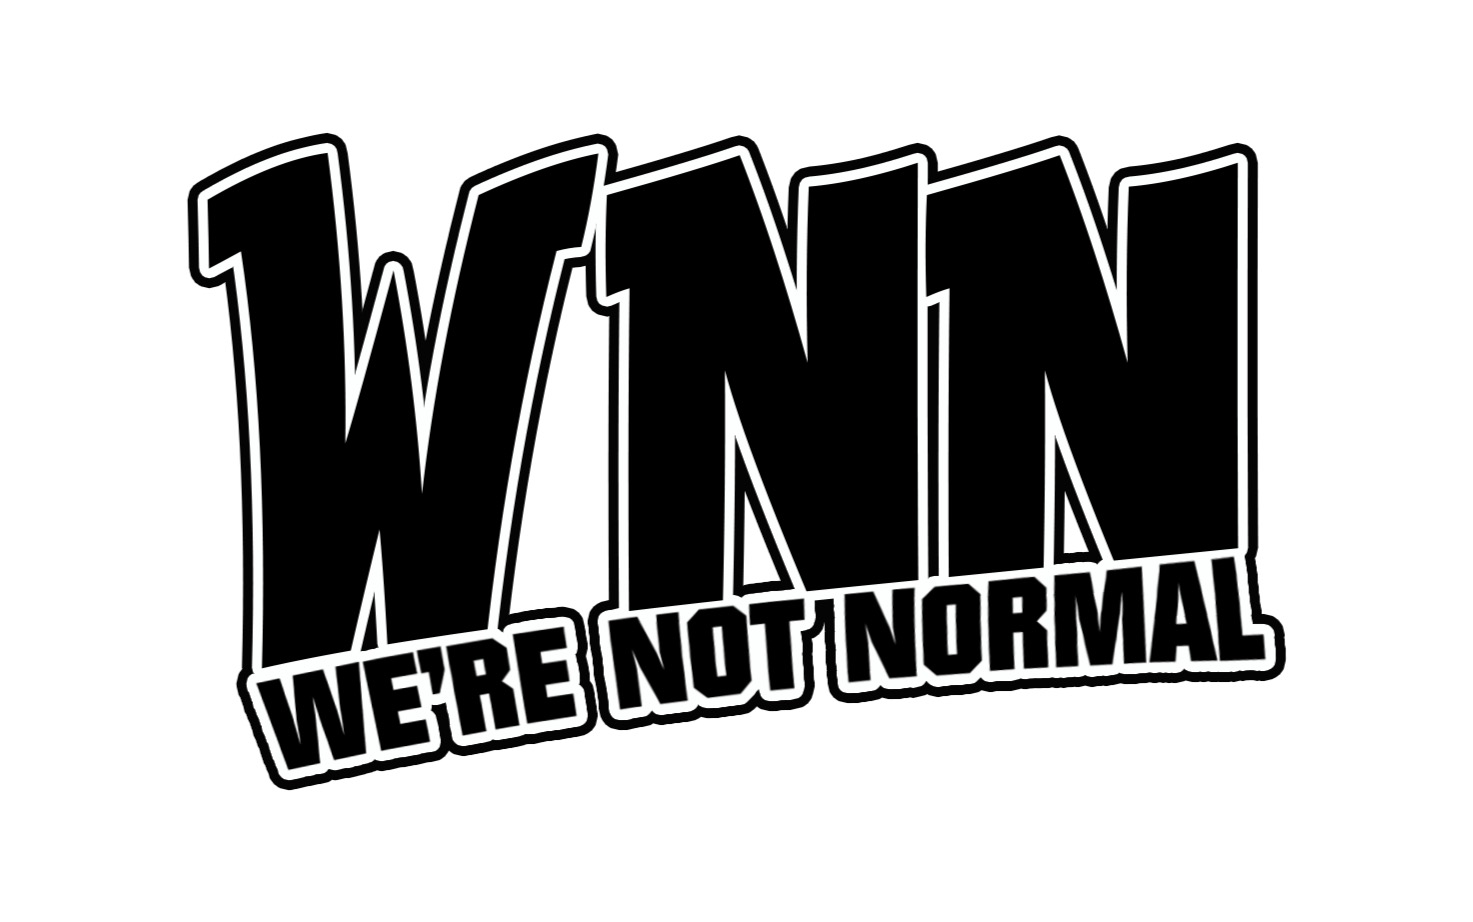 We're Not Normal (WNN)